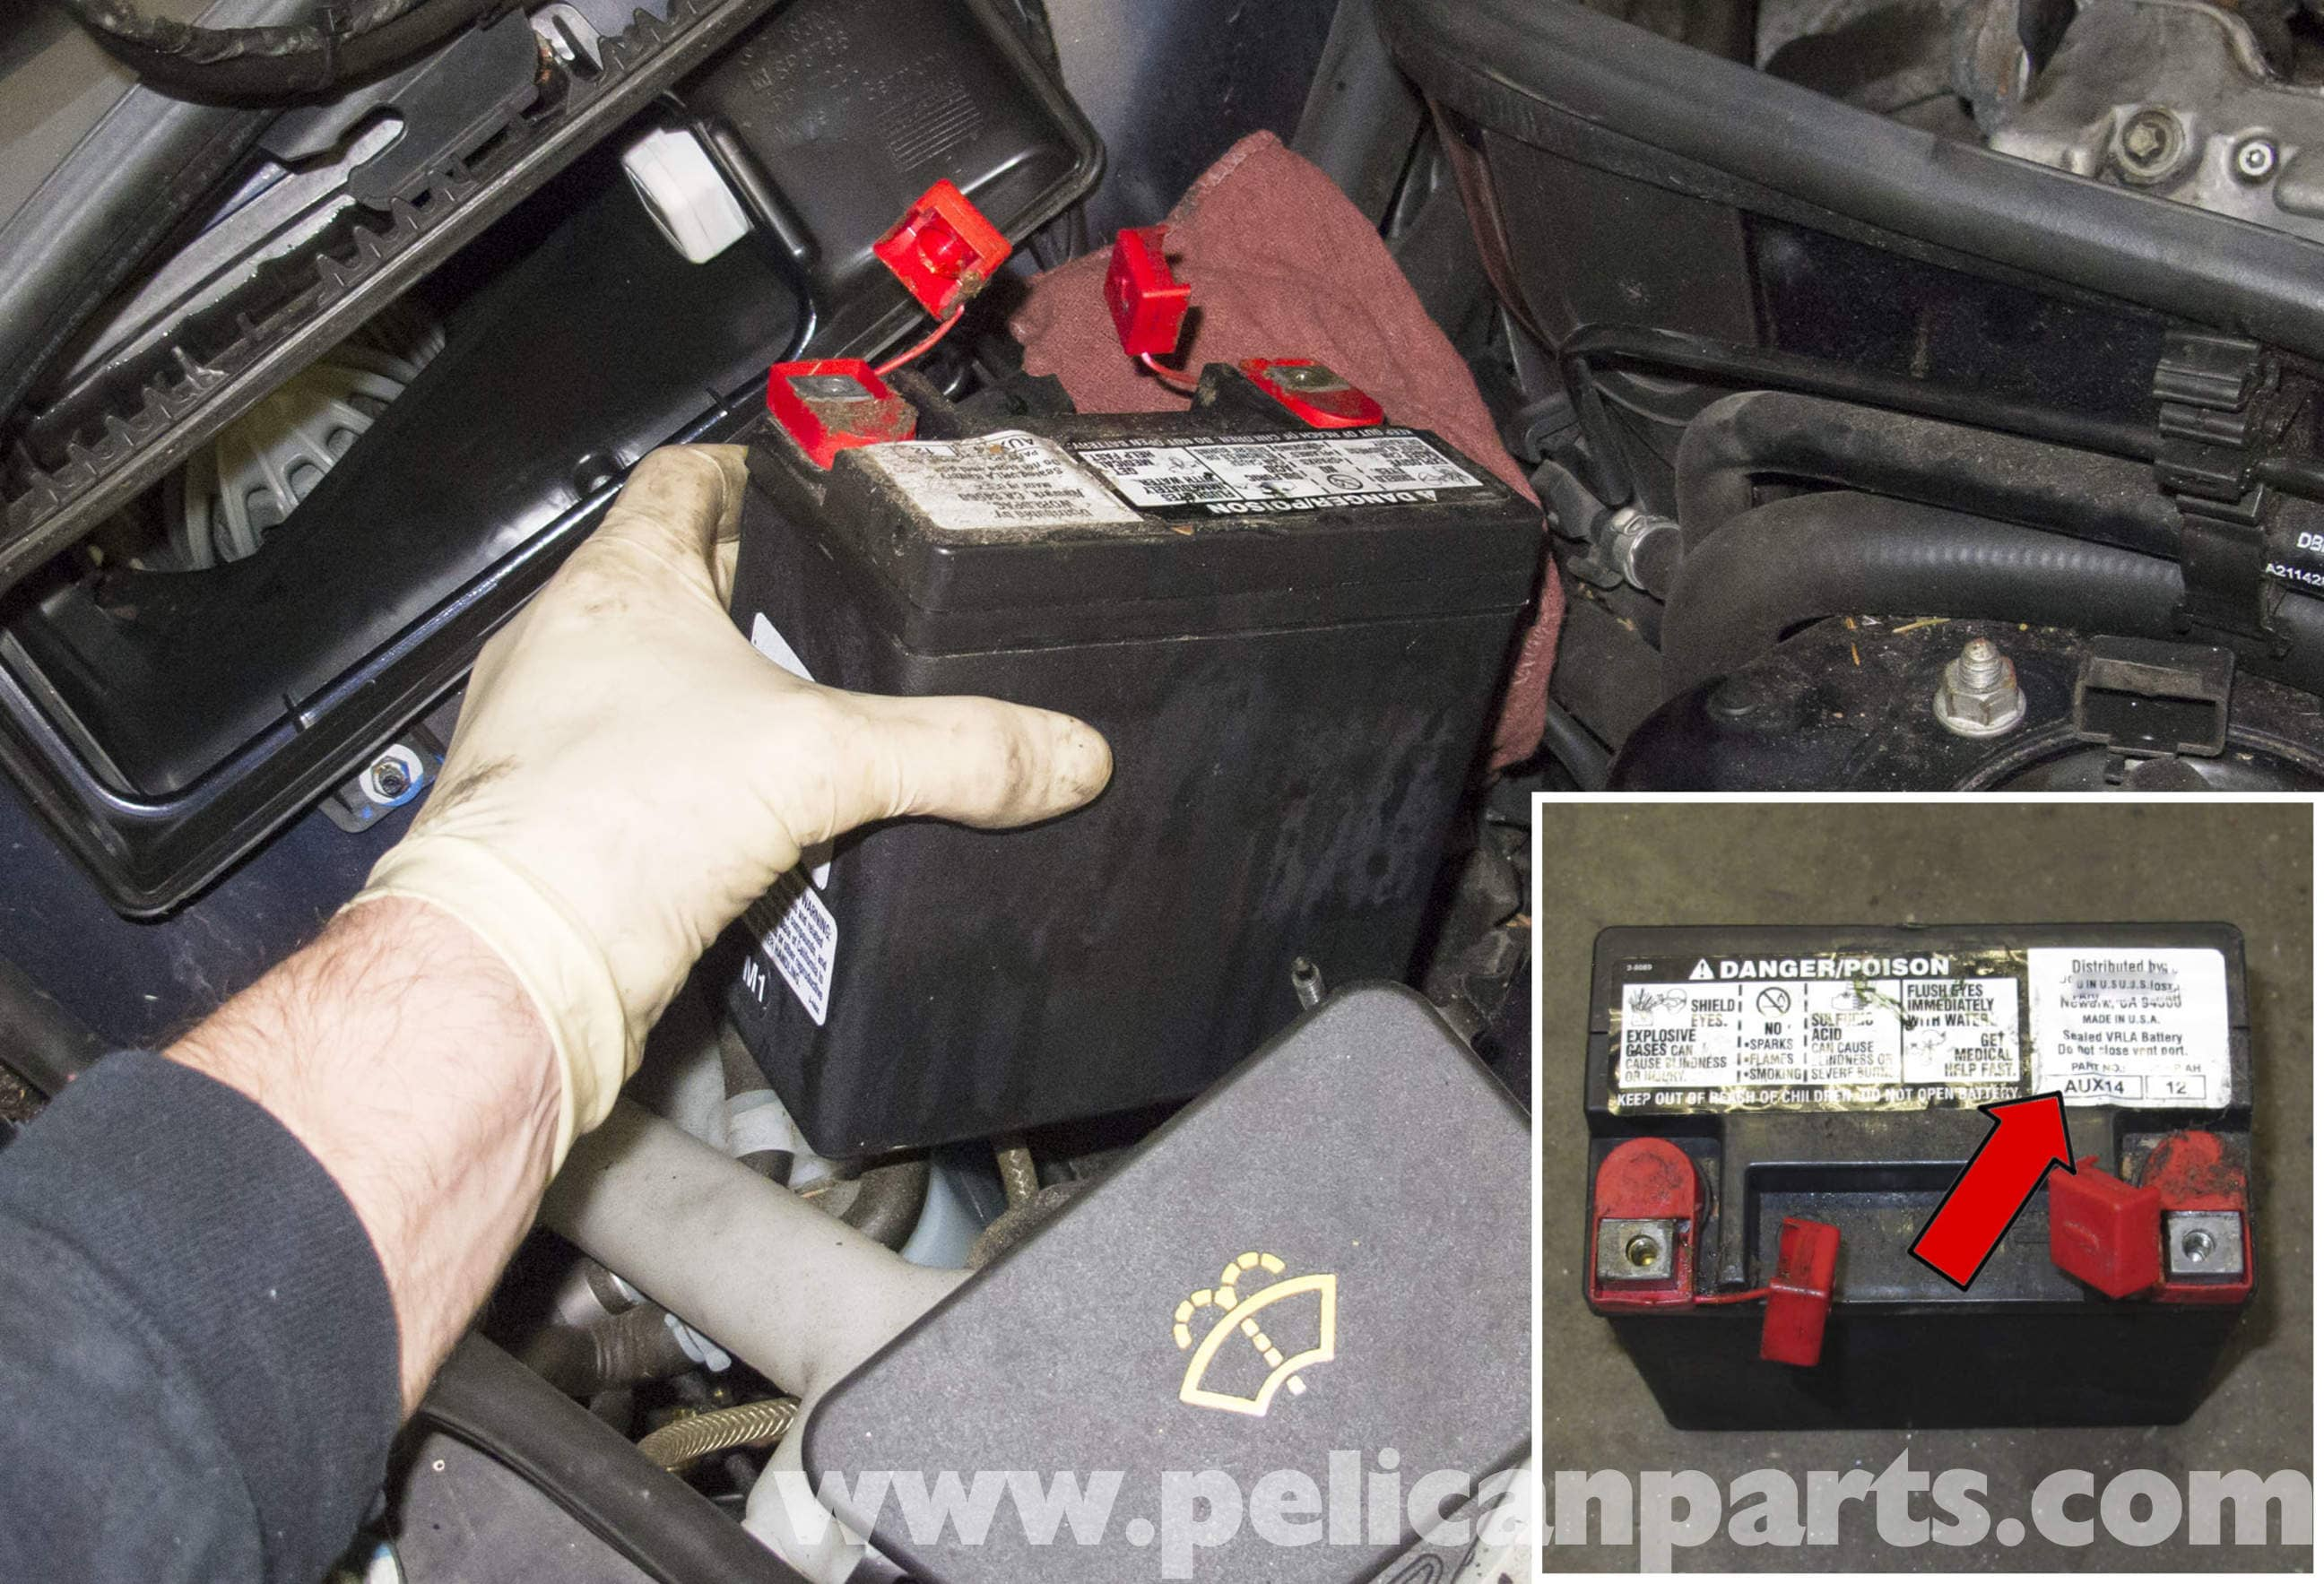 Mercedes Benz E Sedan Battery Location on mercedes-benz e550 cabriolet, mercedes-benz e550 convertible, 2011 mercedes e-class sedan, 2014 mercedes e-class sedan, mercedes-benz c350 sedan, 2015 e400 mercedes-benz sedan, mercedes-benz e350 sedan, mercedes-benz e550 car, mercedes-benz s-class sedan, mercedes-benz e550 wagon, mercedes-benz luxury sedan, 2007 mercedes-benz sedan, mercedes-benz 190 sedan, mercedes-benz e250 sedan, mercedes s500 sedan, mercedes-benz e550 amg, mercedes-benz e550 luxury, 2011 mercedes e350 sedan, mercedes-benz c230 sport sedan, 2009 mercedes e350 sedan,